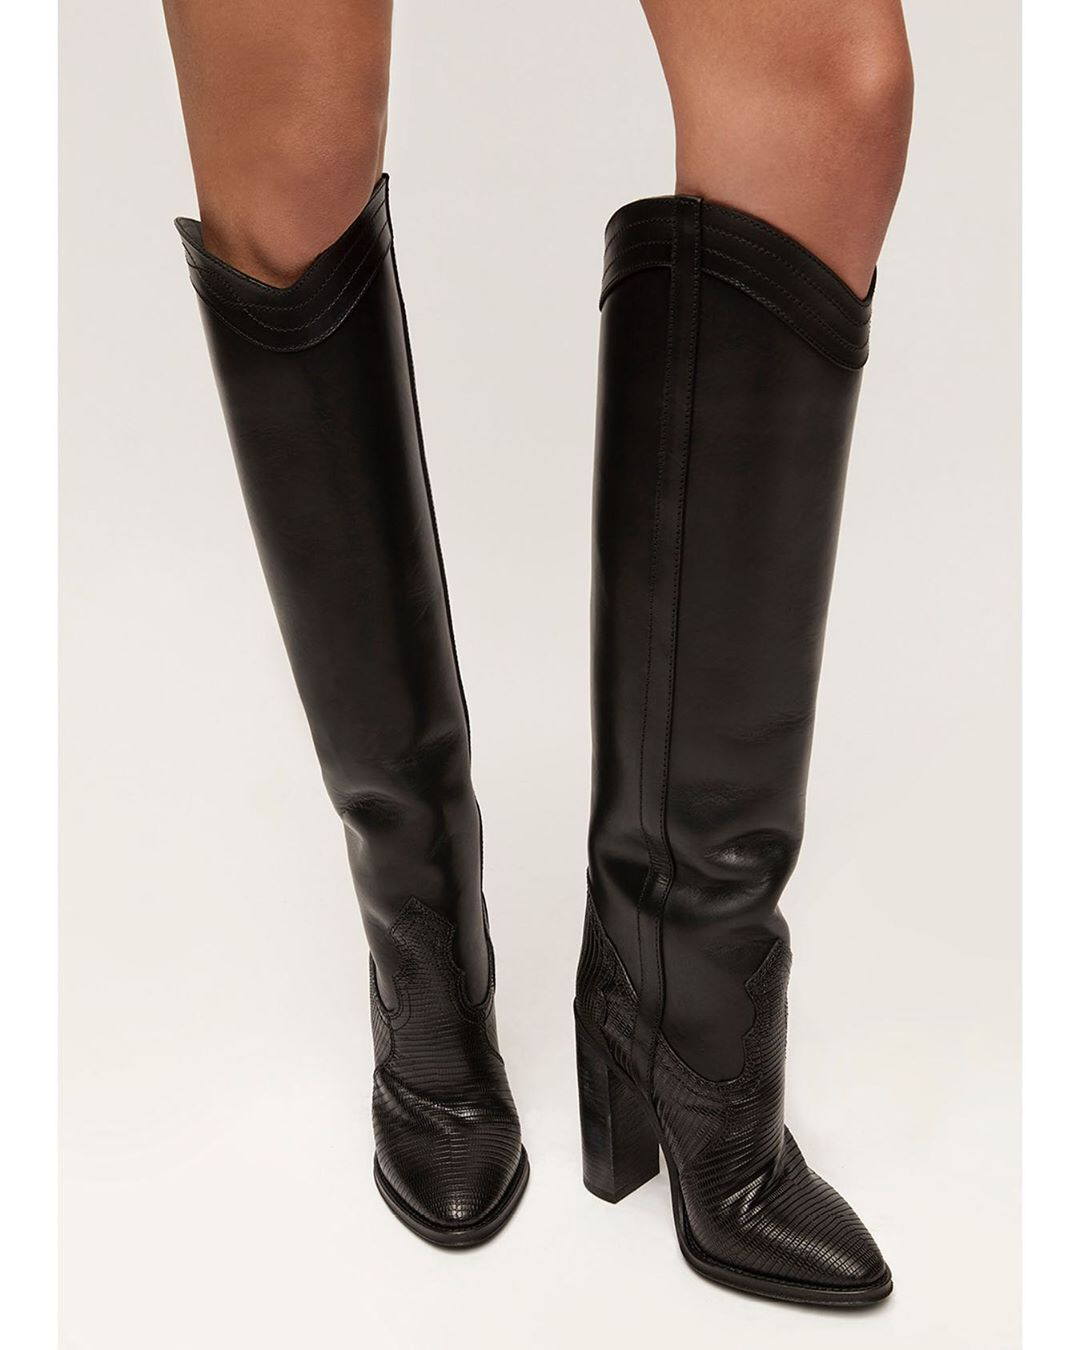 Boots, Ysl boots